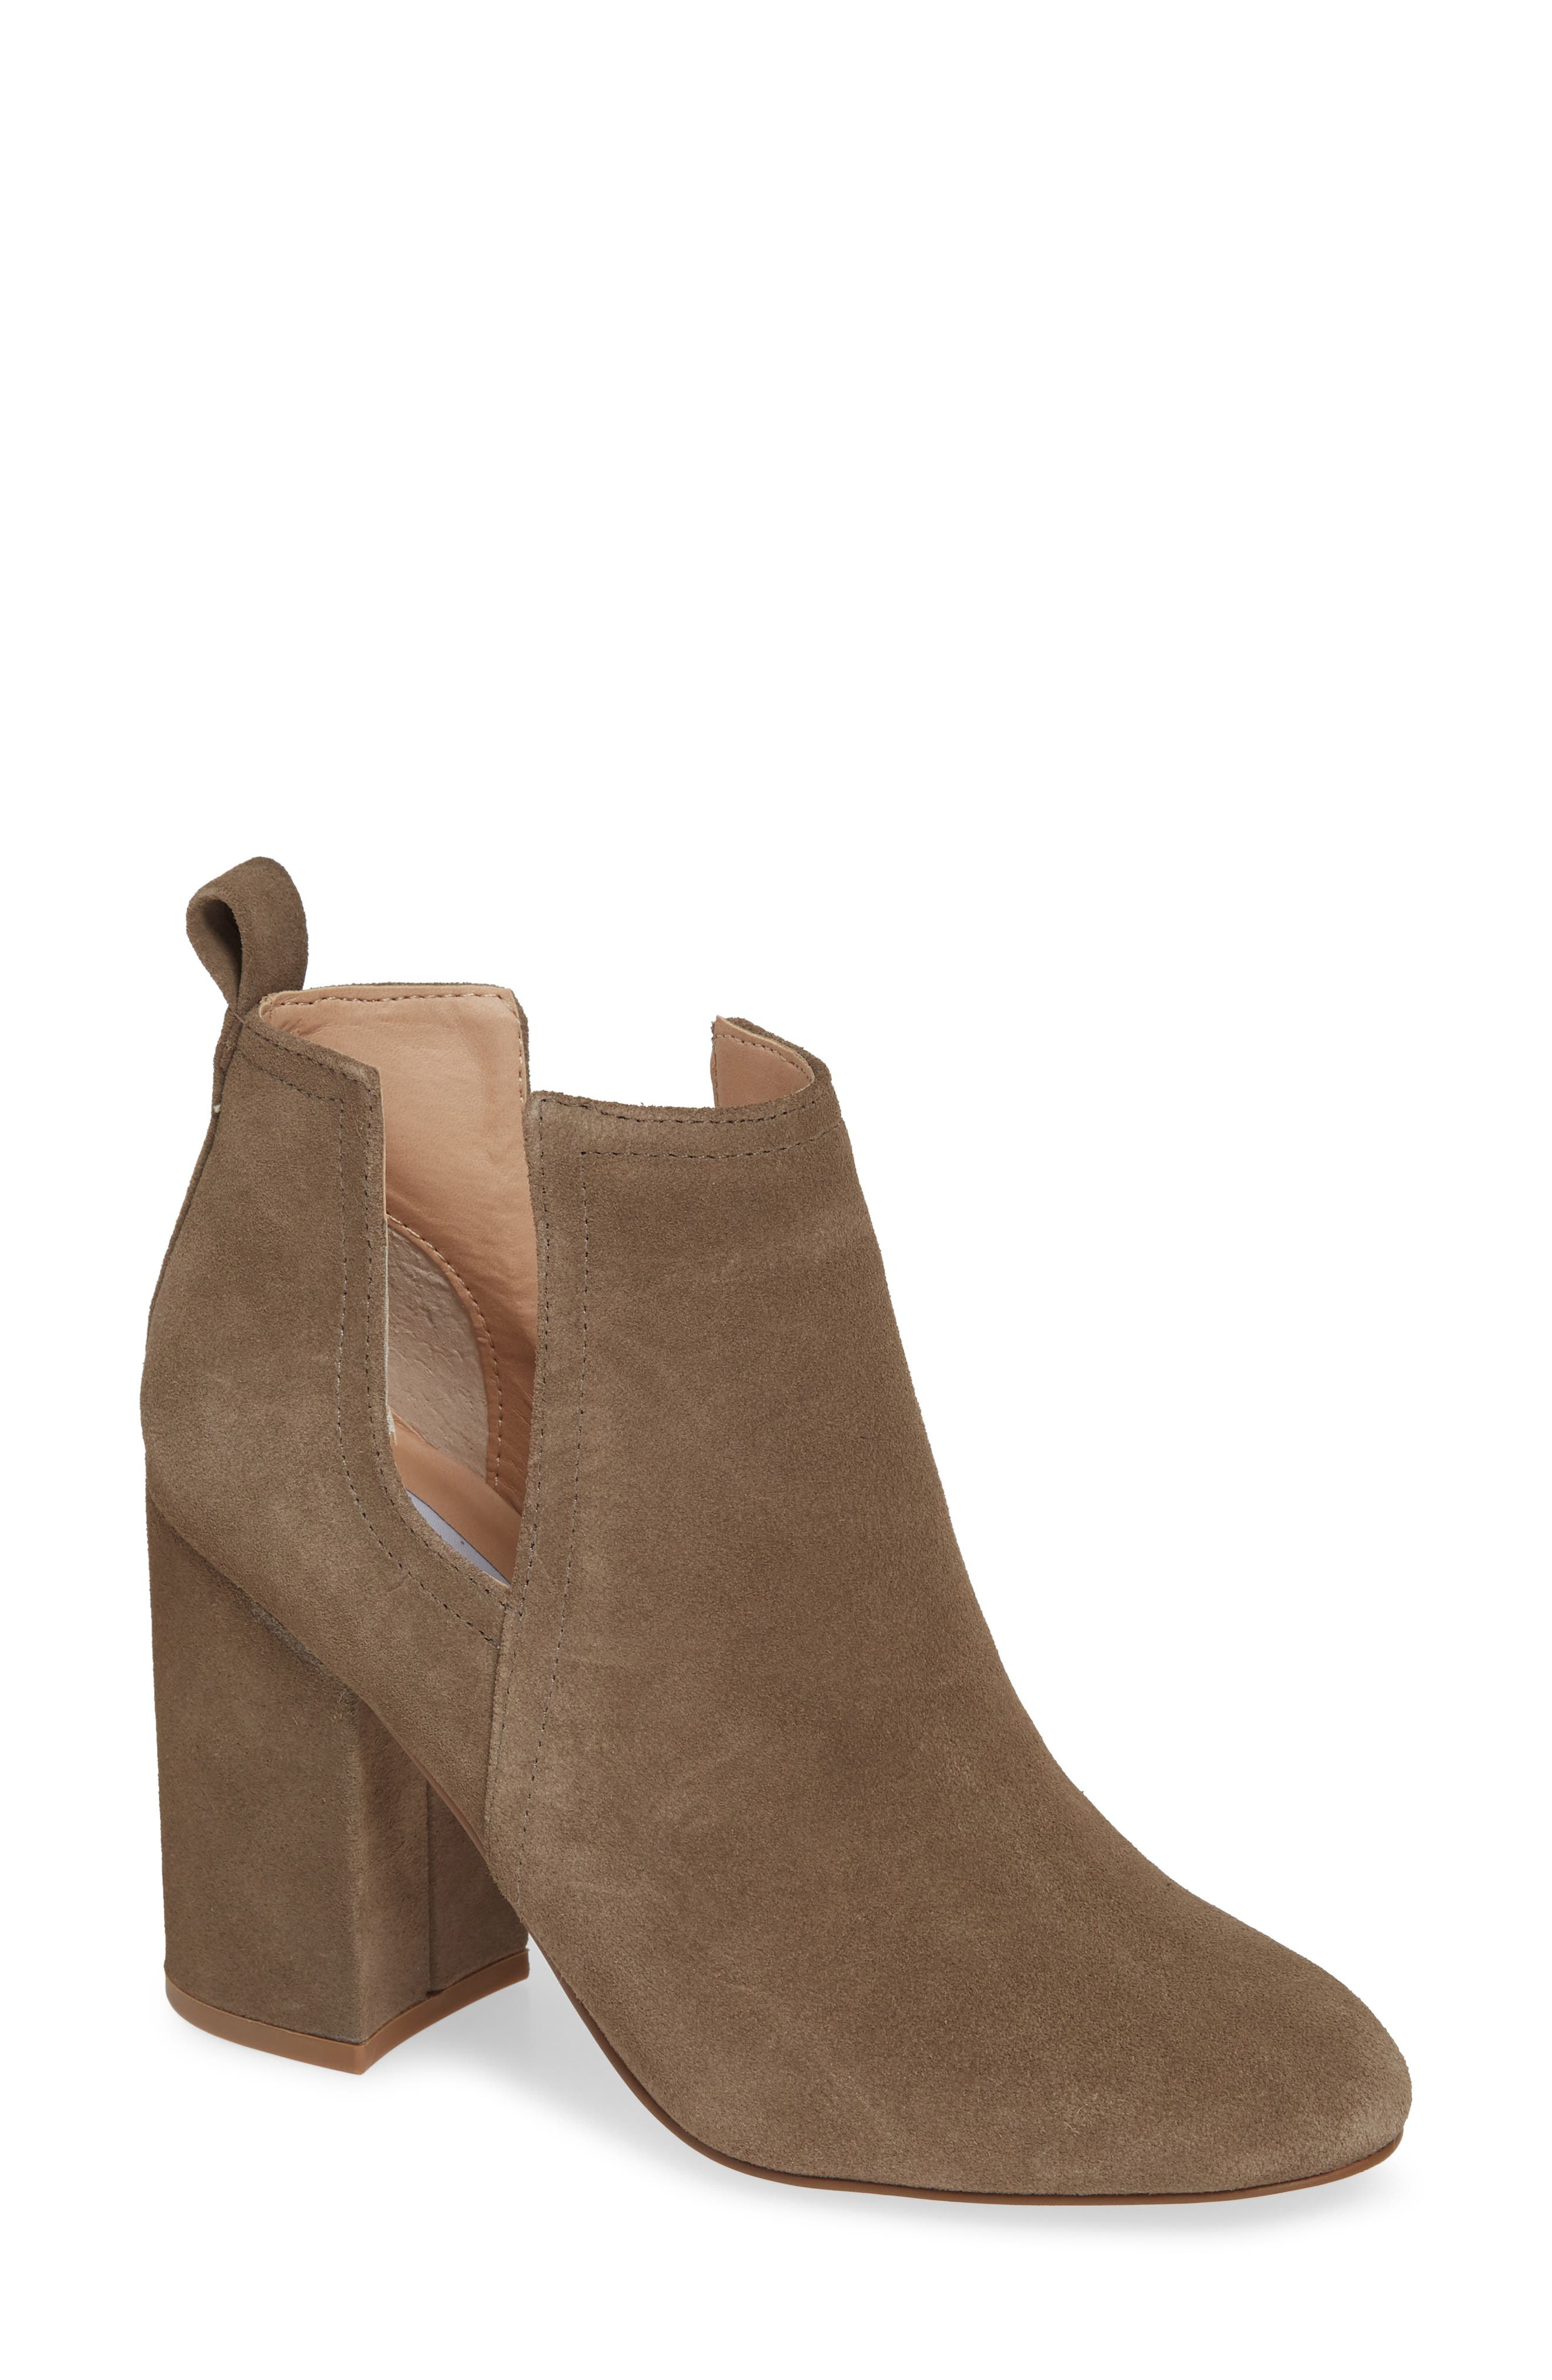 Nayna Bootie,                         Main,                         color, DARK TAUPE